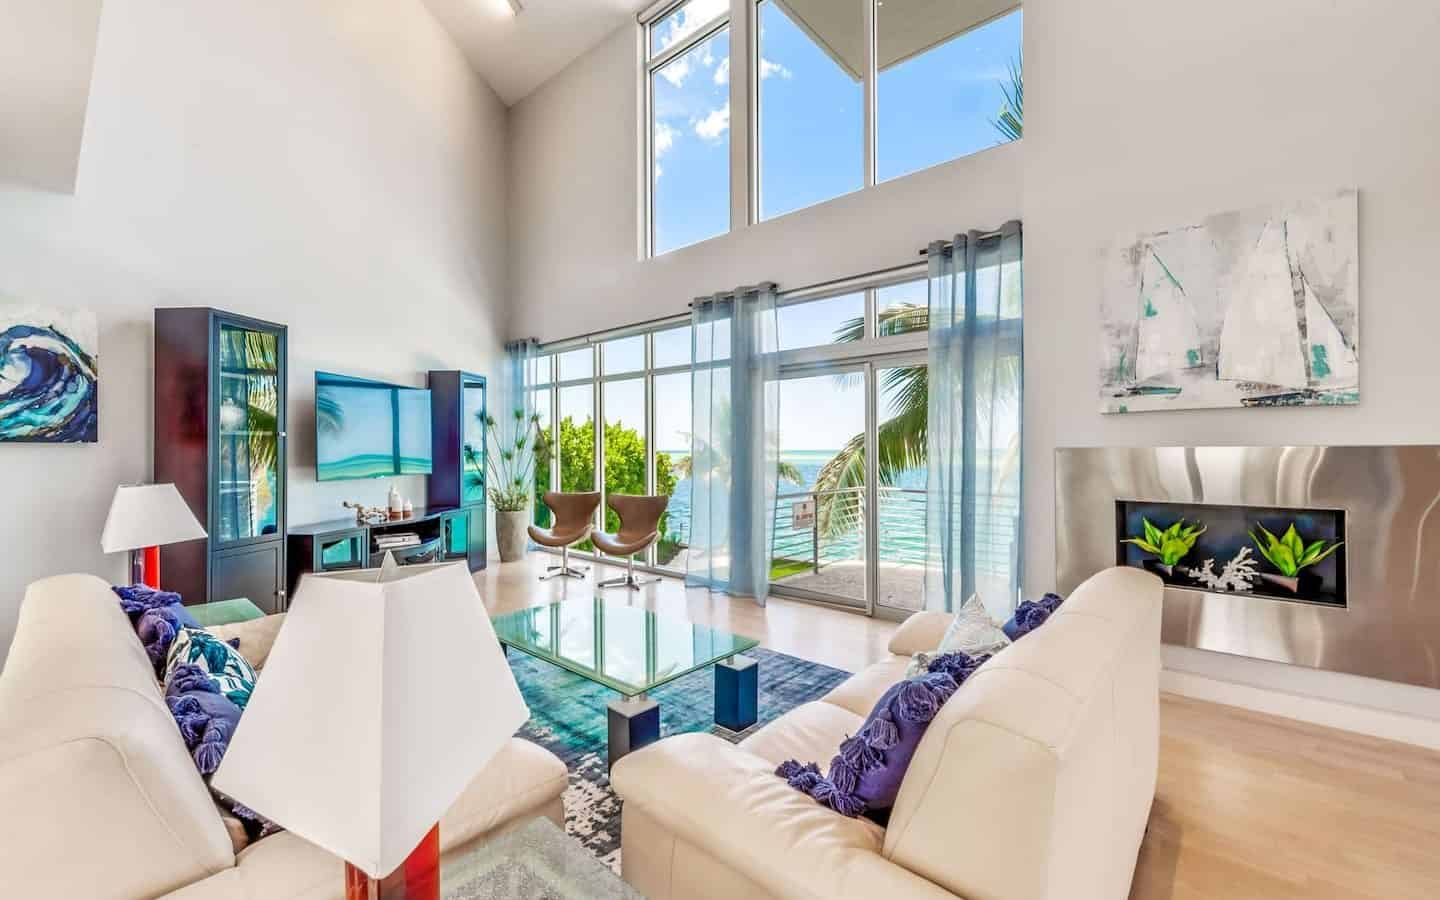 Photo of a living room with an ocean view inside an Airbnb in Sarasota.